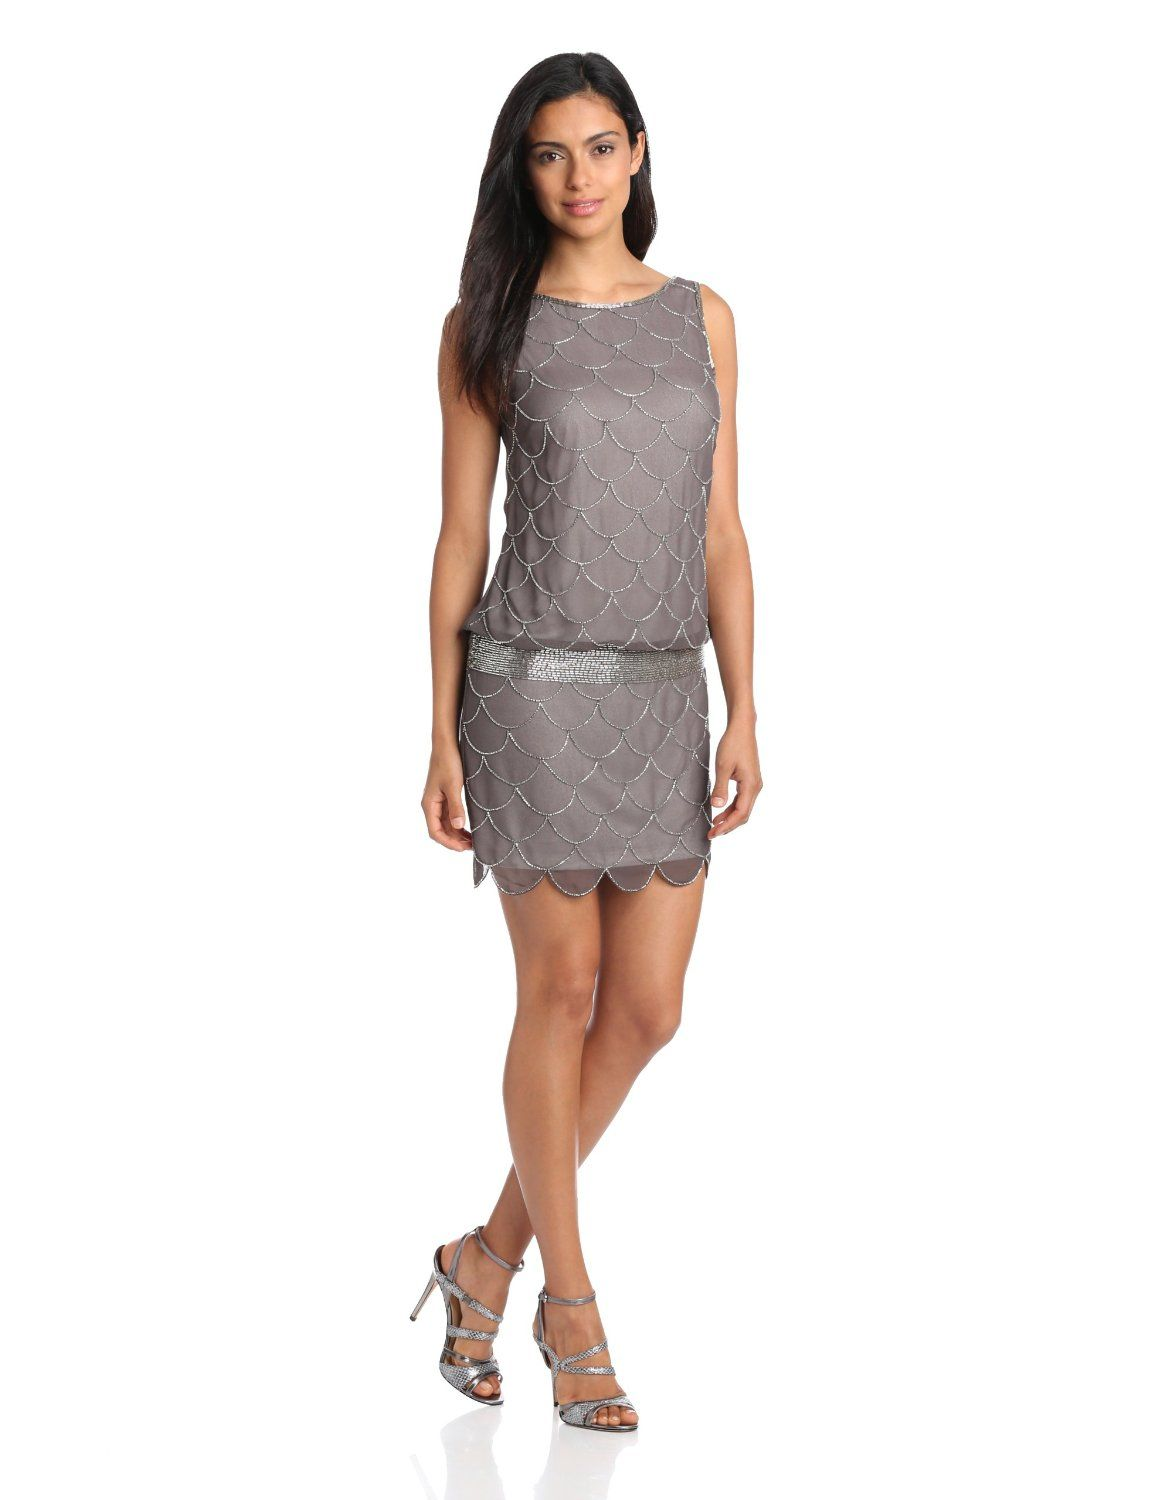 6f83debe674b7 Adrianna Papell Womens Fish Scale Beaded Dress | Clothes I Like ...